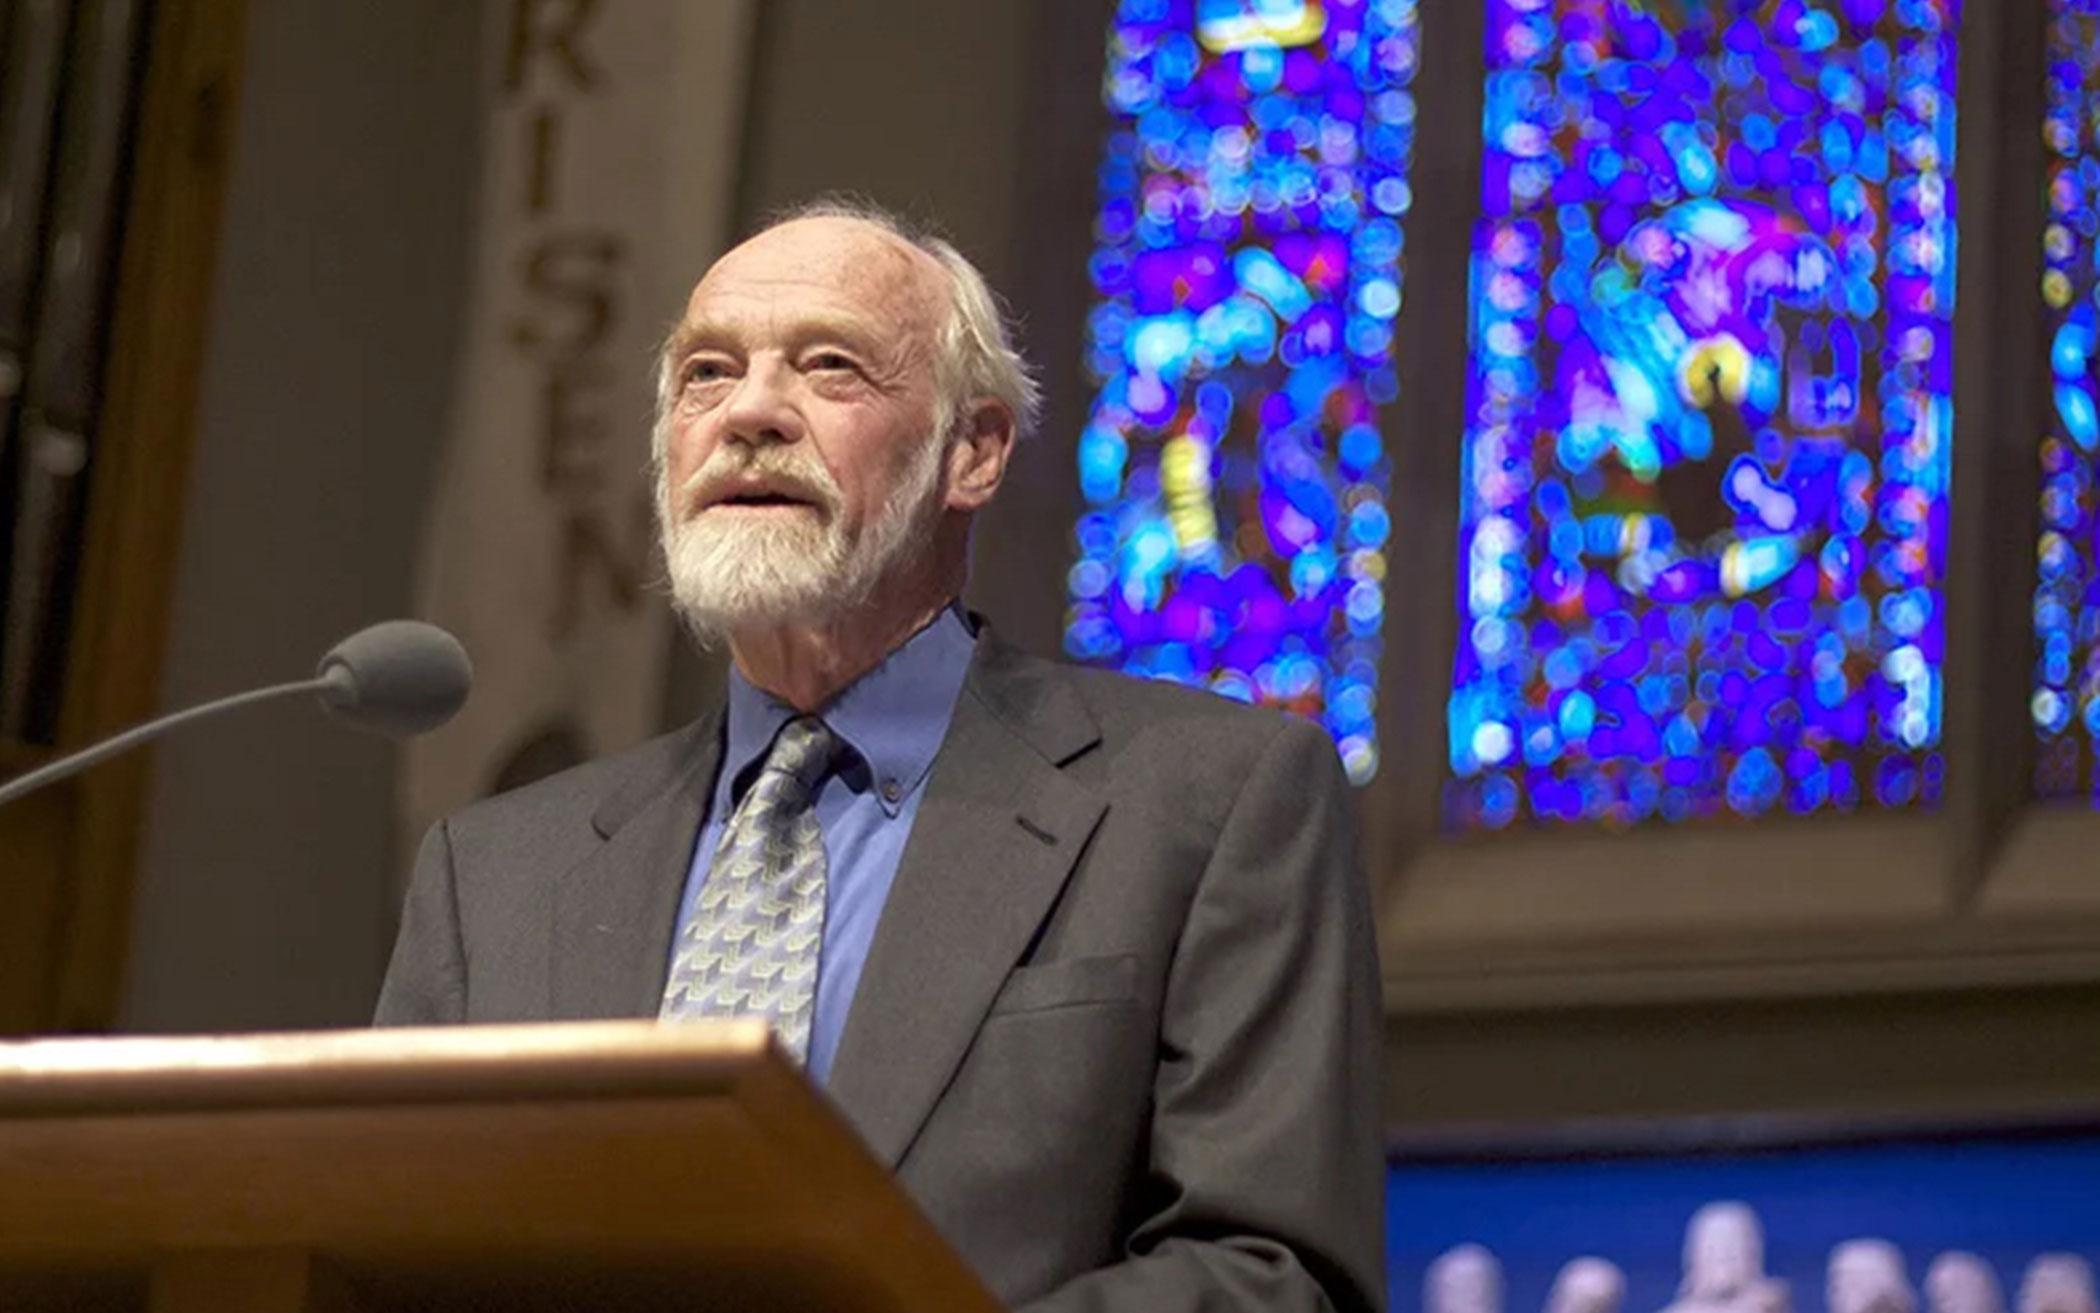 Eugene Peterson, Pastor and Author of The Message Dies at Age 85